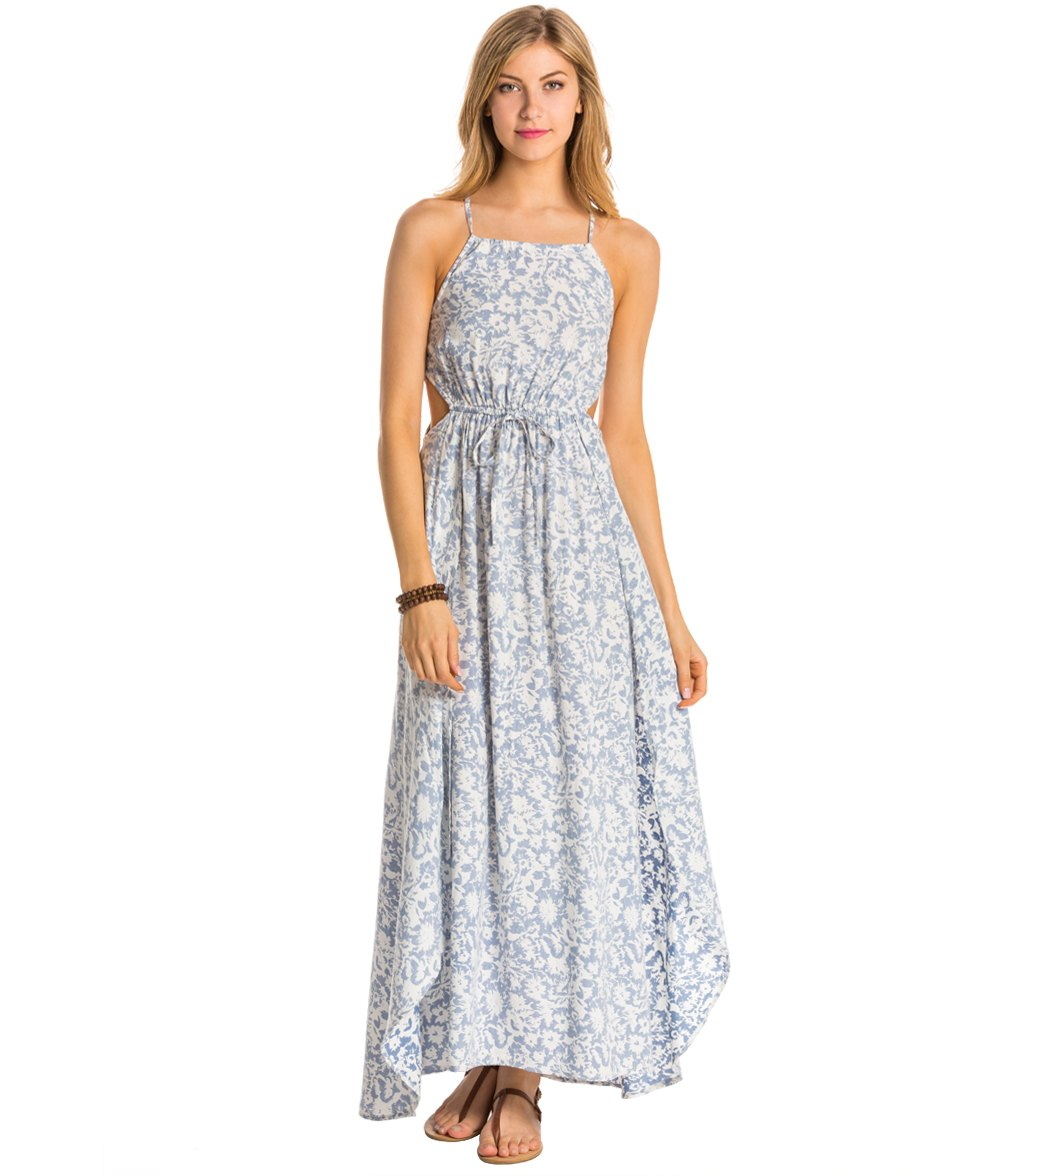 Billabong Sounds Of The Sea Maxi Dress at SwimOutlet.com - Free ...